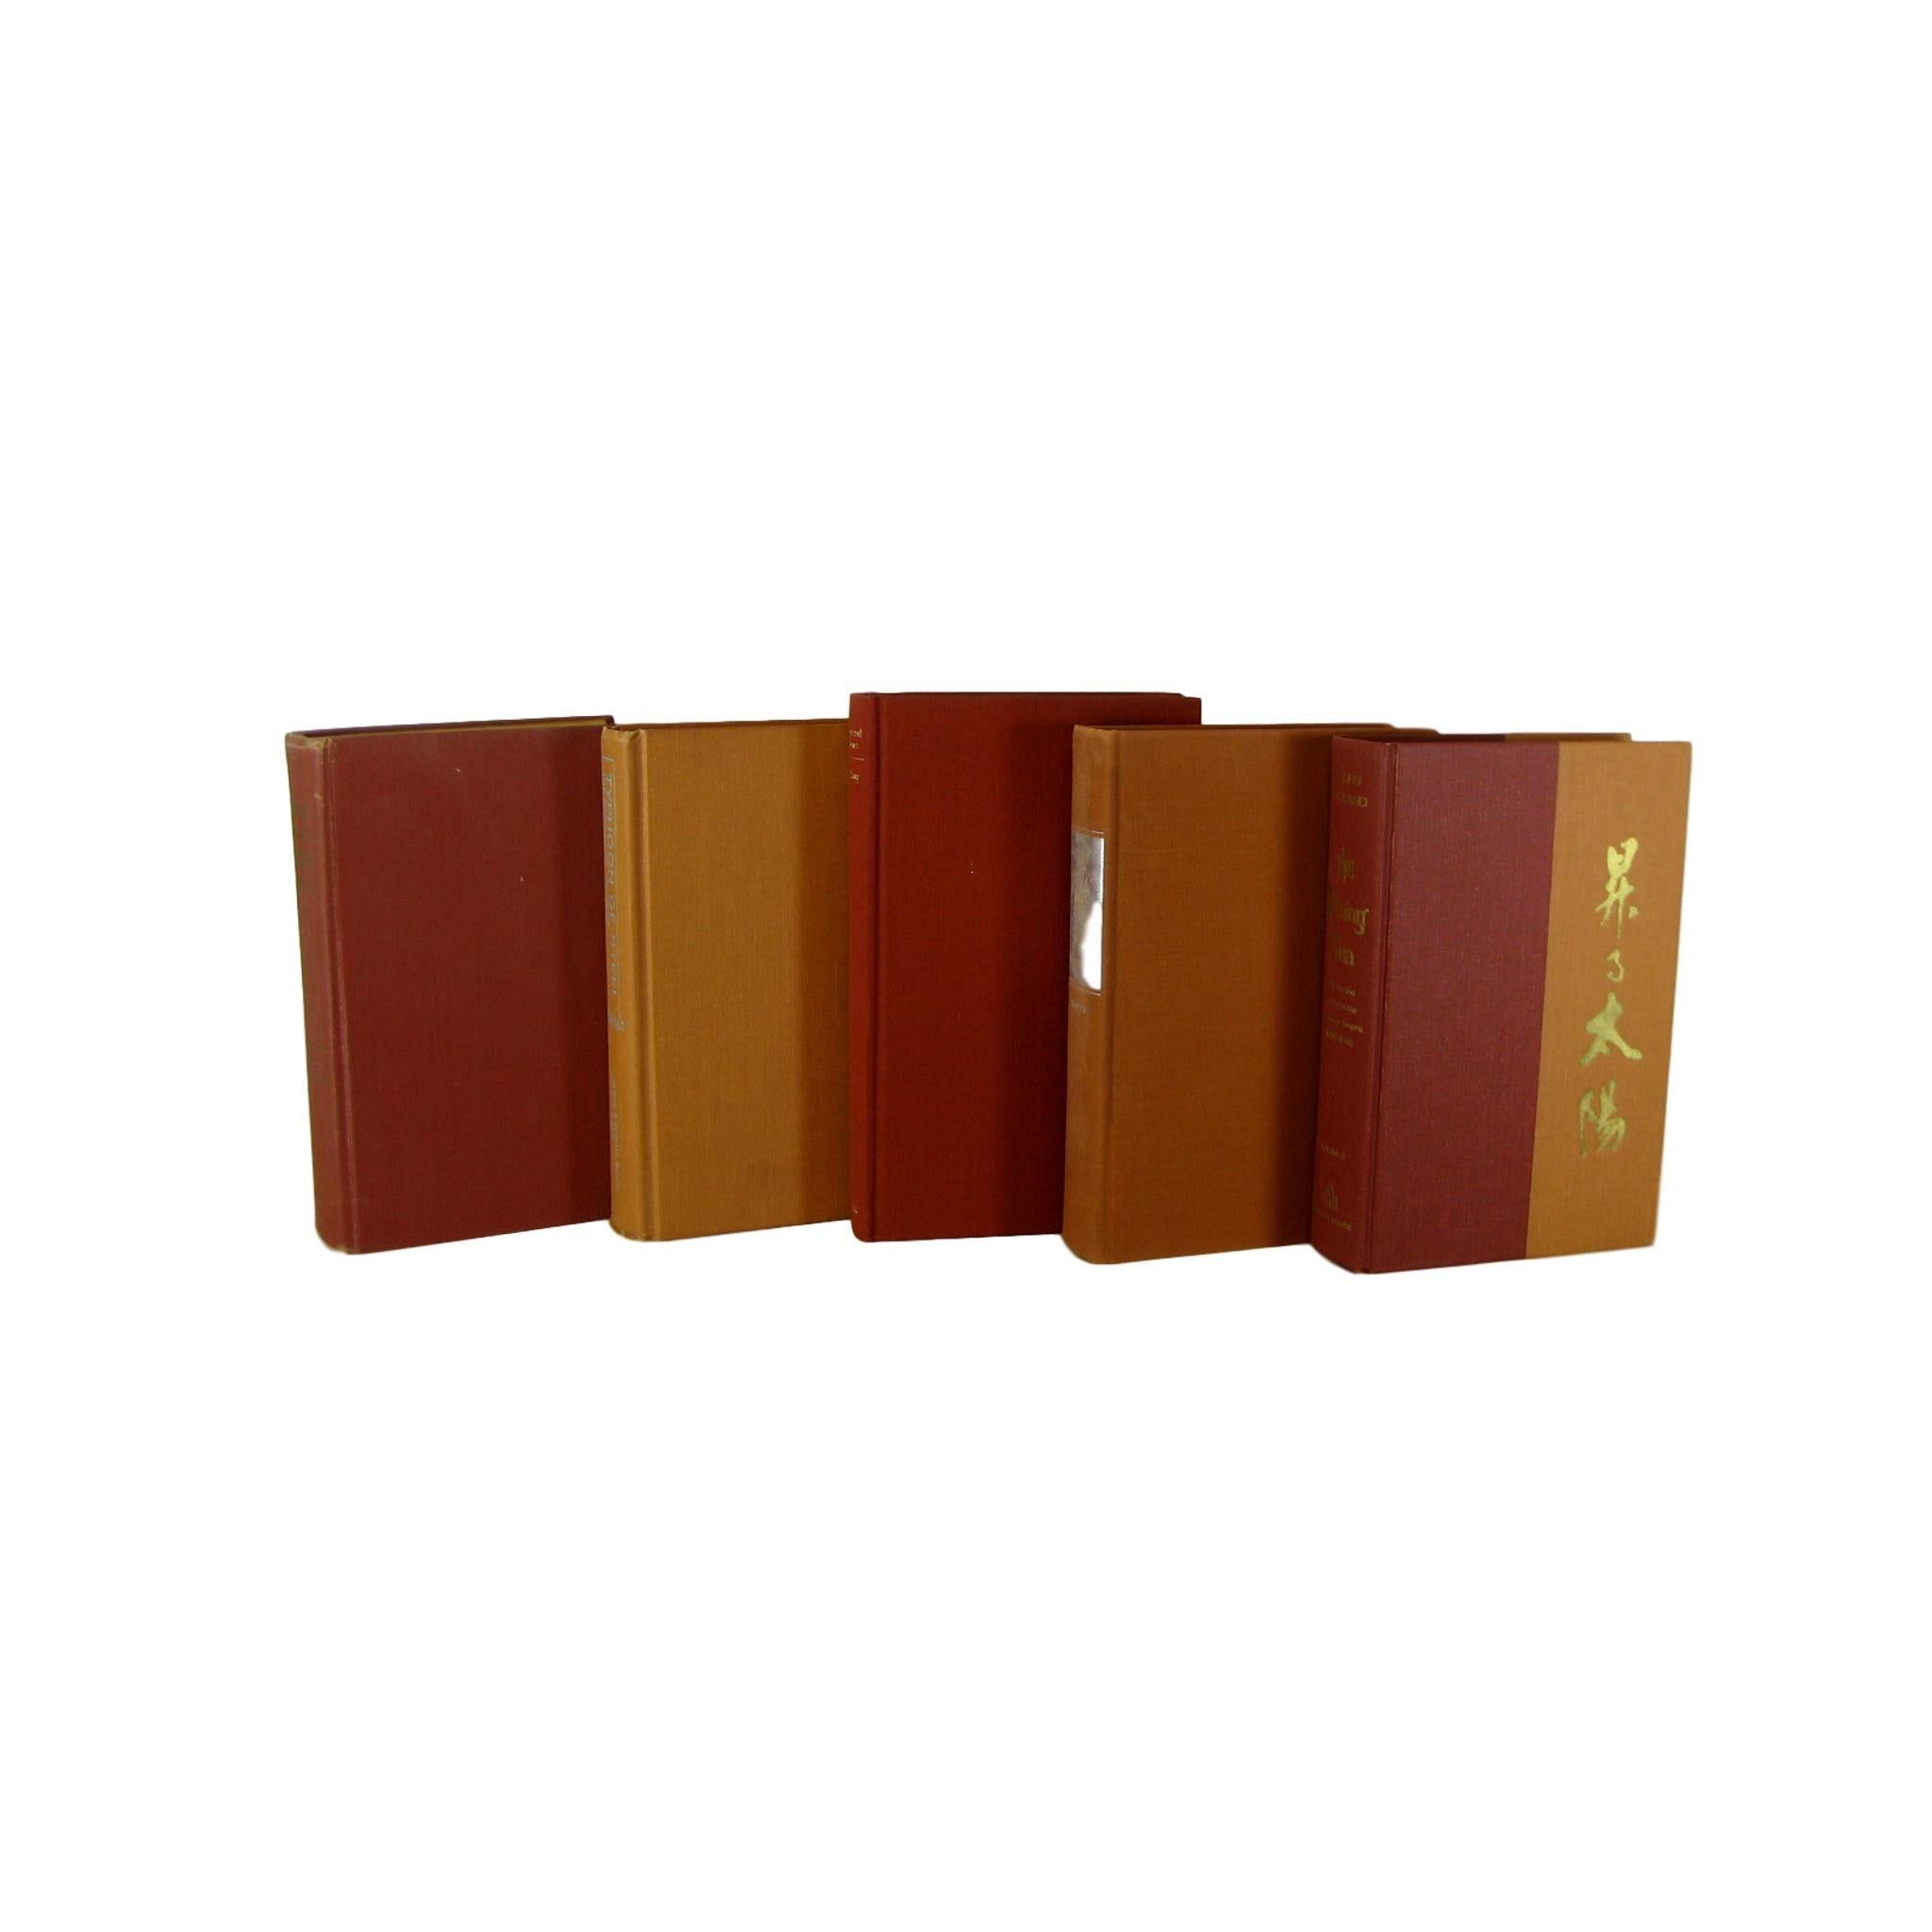 Earth-tone Orange Brick Decorative Vintage Books  for Decor, S/5 - Decades of Vintage